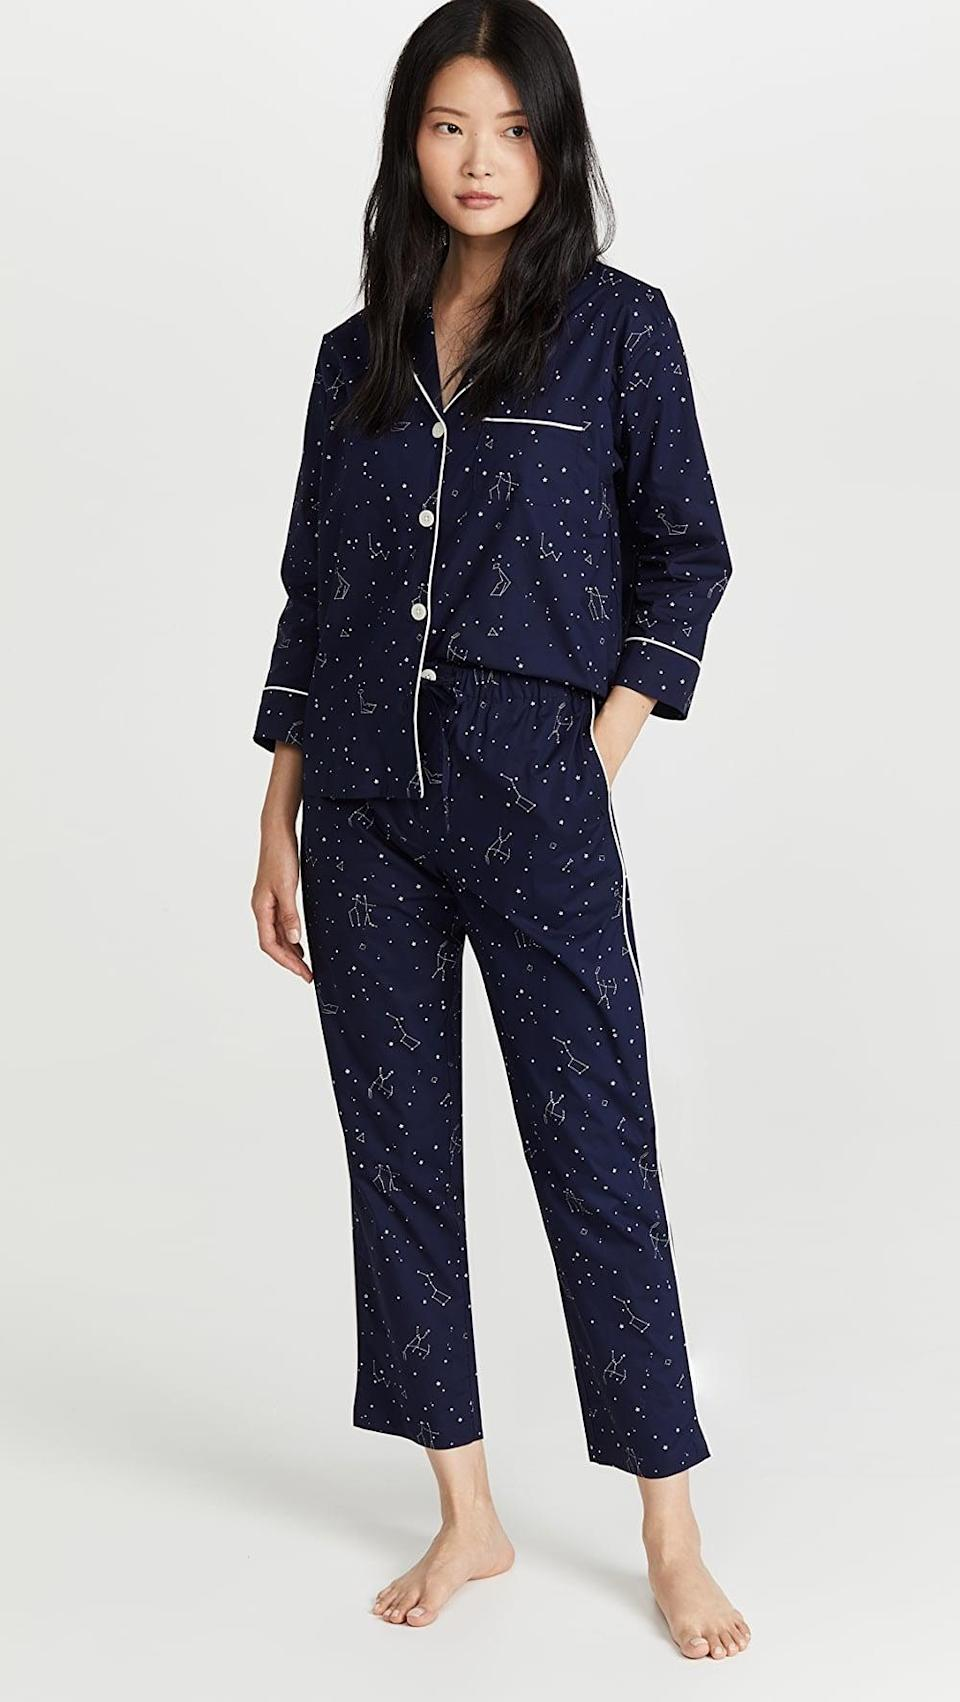 <p>The print on this <span>Sleepy Jones Marina Pajama Set</span> ($198) is so beautiful. The constellations make us smile, and inspire us to have some sweet, starry dreams.</p>